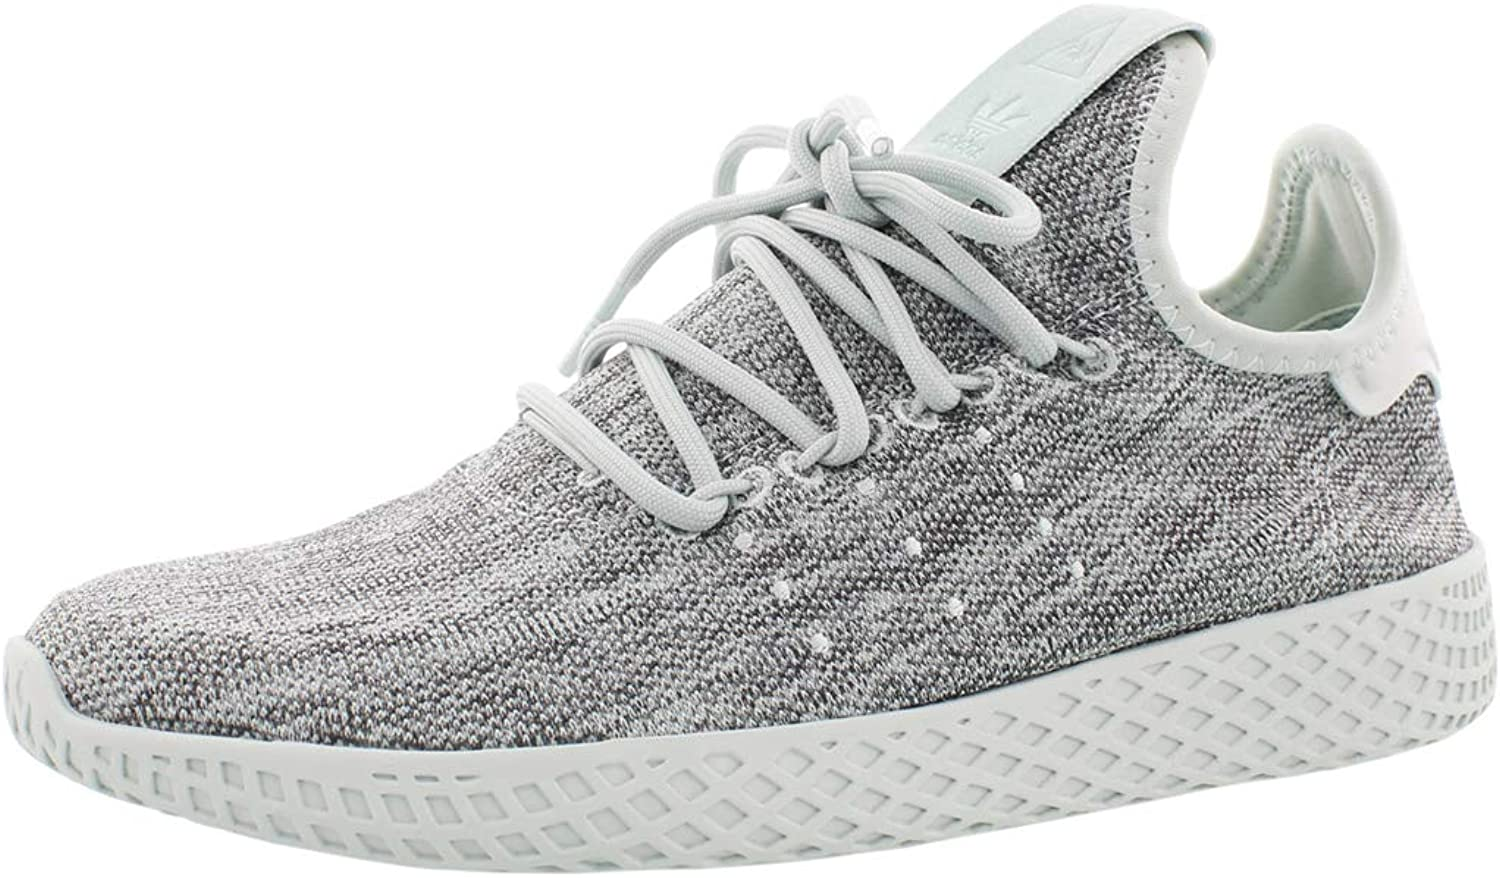 Adidas Damen Pw Tennis Hu W Db2859